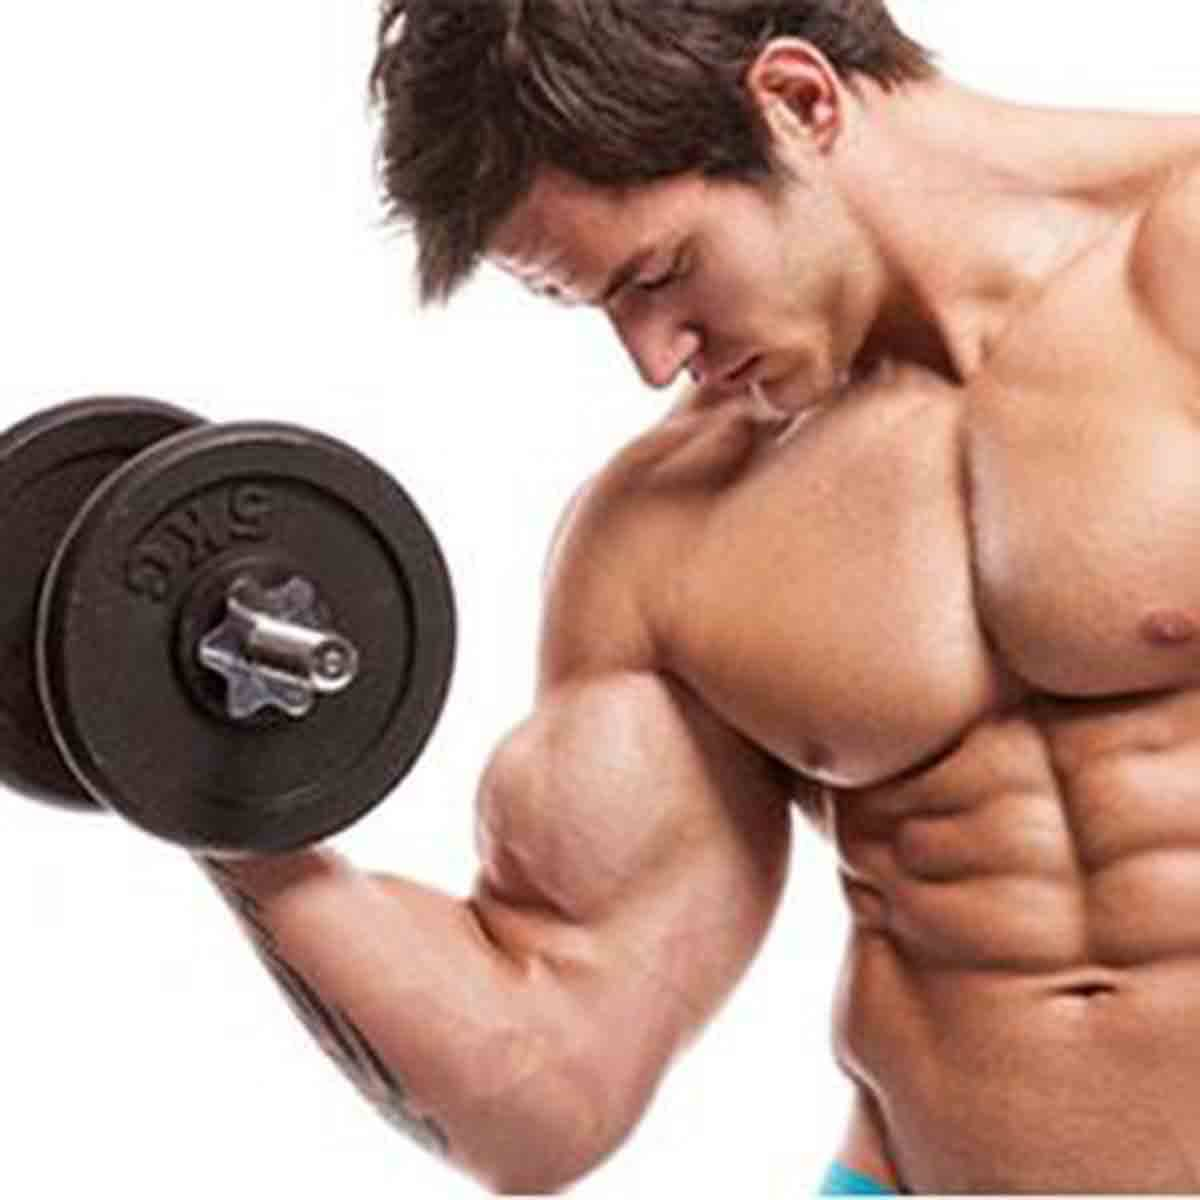 HGH Gut and Palumboism Facts and Myths, Body Building